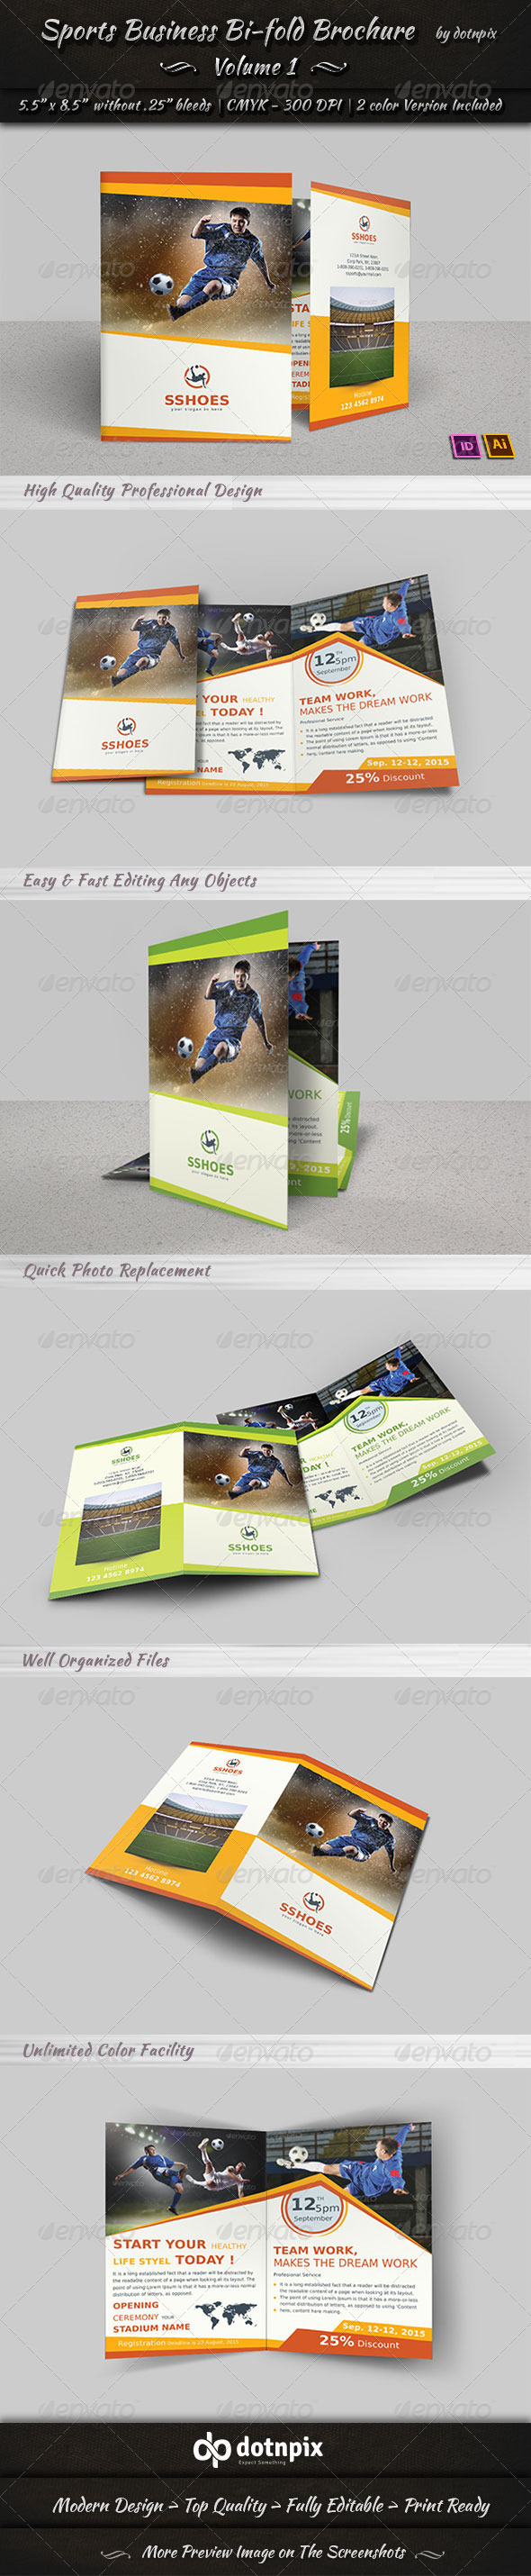 GraphicRiver Sports Business Bi-Fold Brochure Volume 1 6856131